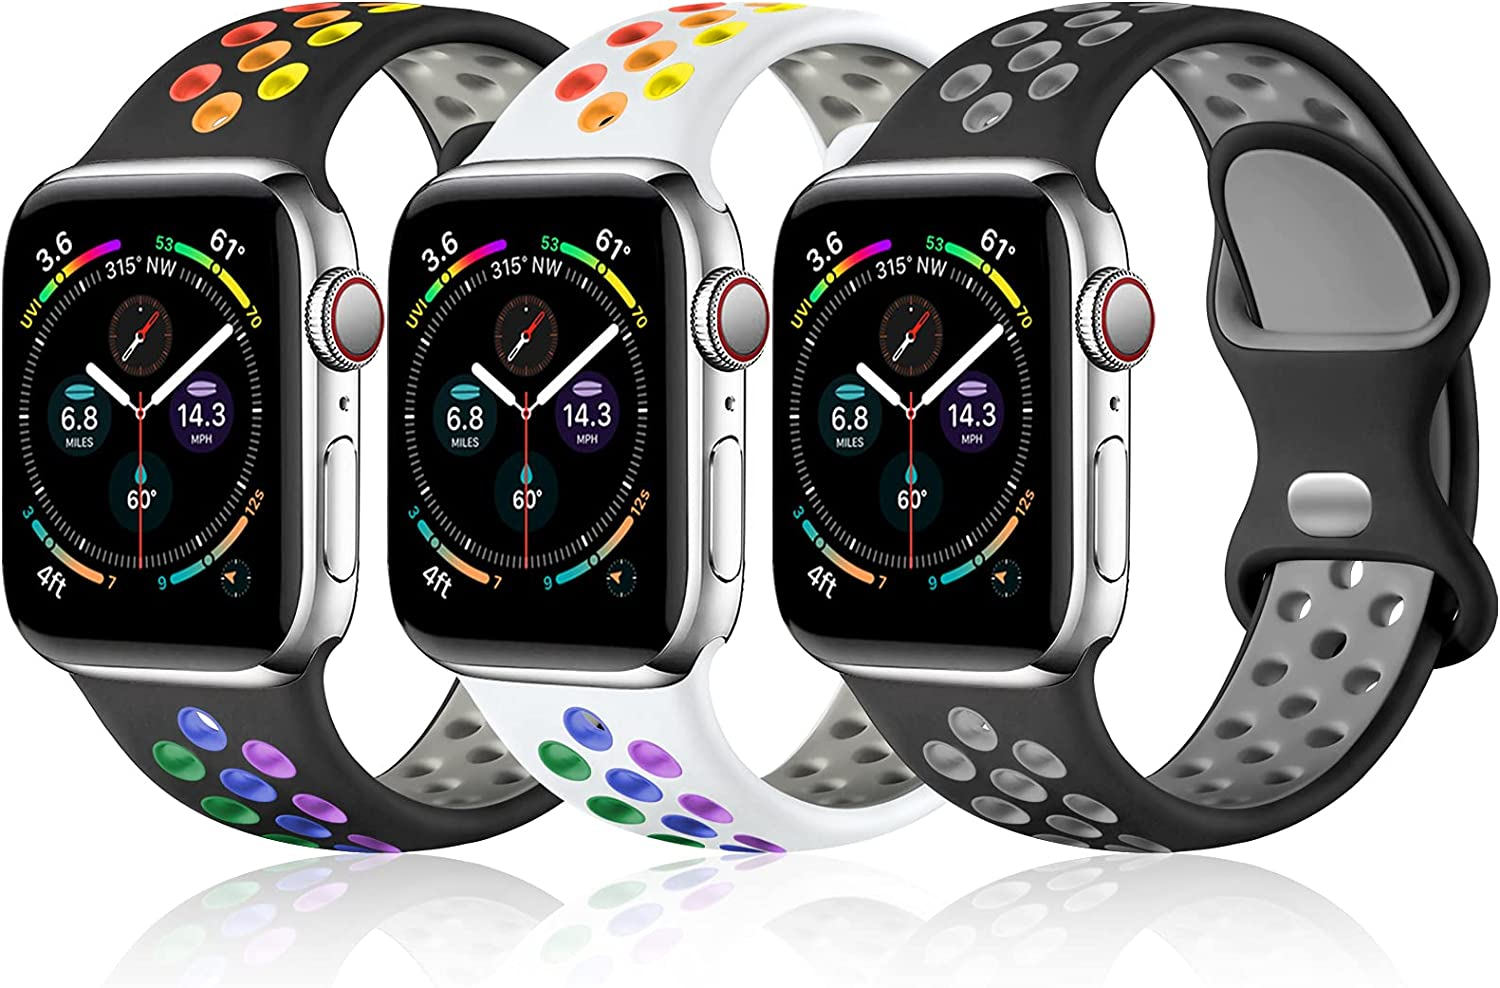 Fuleda Compatible with Apple Watch Band 40mm 44mm 38mm 42mm for Women Men, Soft Silicone Sport Strap Breathable Replacement Band for Apple Watch SE iWatch Series 6, Series 5 4 3 2 1 (3 Pack)